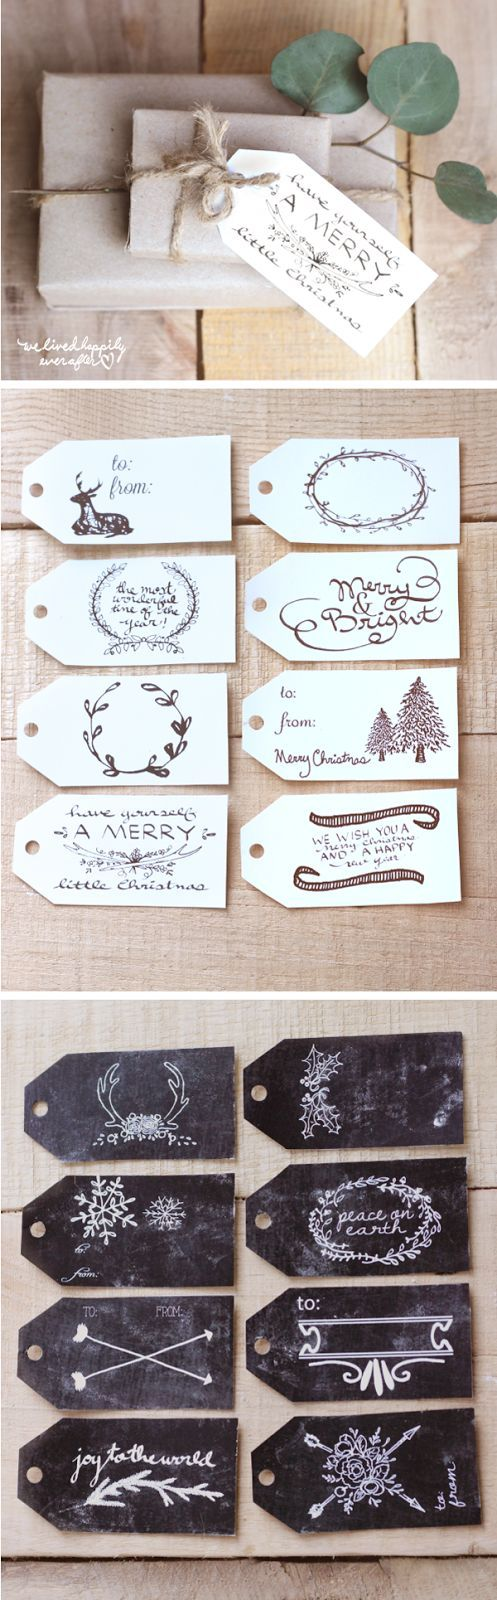 Pretty Variety of Free Printable Christmas Gift Tags | We Lived Happily Ever After - The BEST Christmas and Holiday FREE Printables - Gift Tags - Gift Card Holders - Christmas Greeting Cards and more FREE Downloadable Printables for the Holiday Seasons